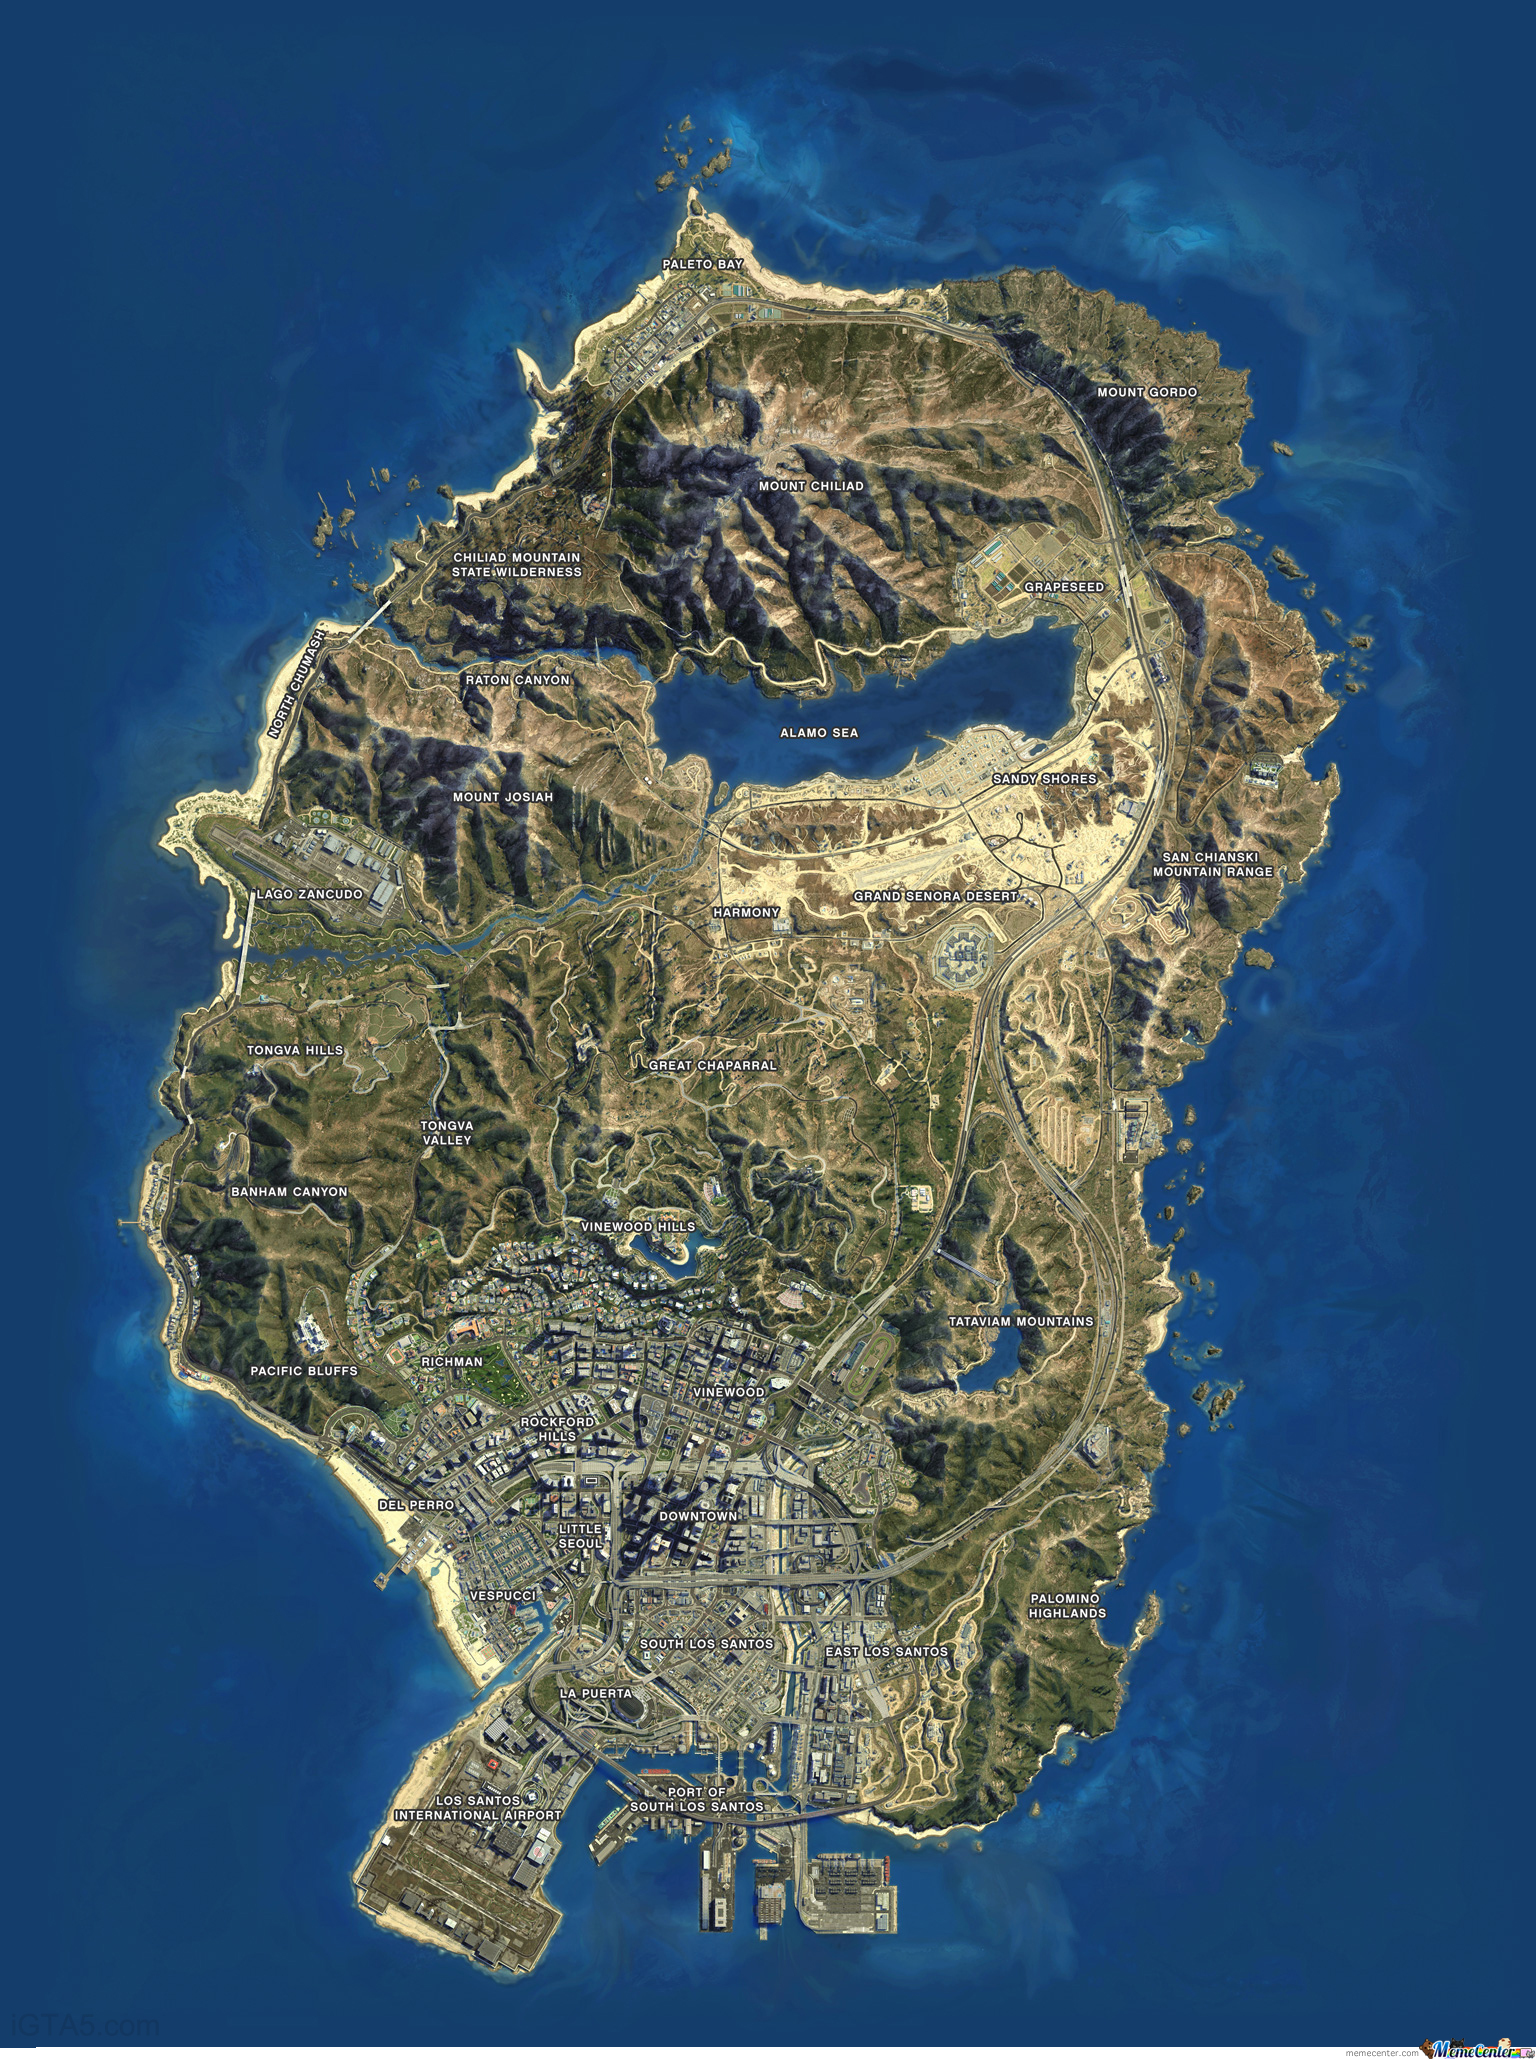 Gta v map actual size satalite view by customz meme center gta v map actual size satalite view gumiabroncs Image collections